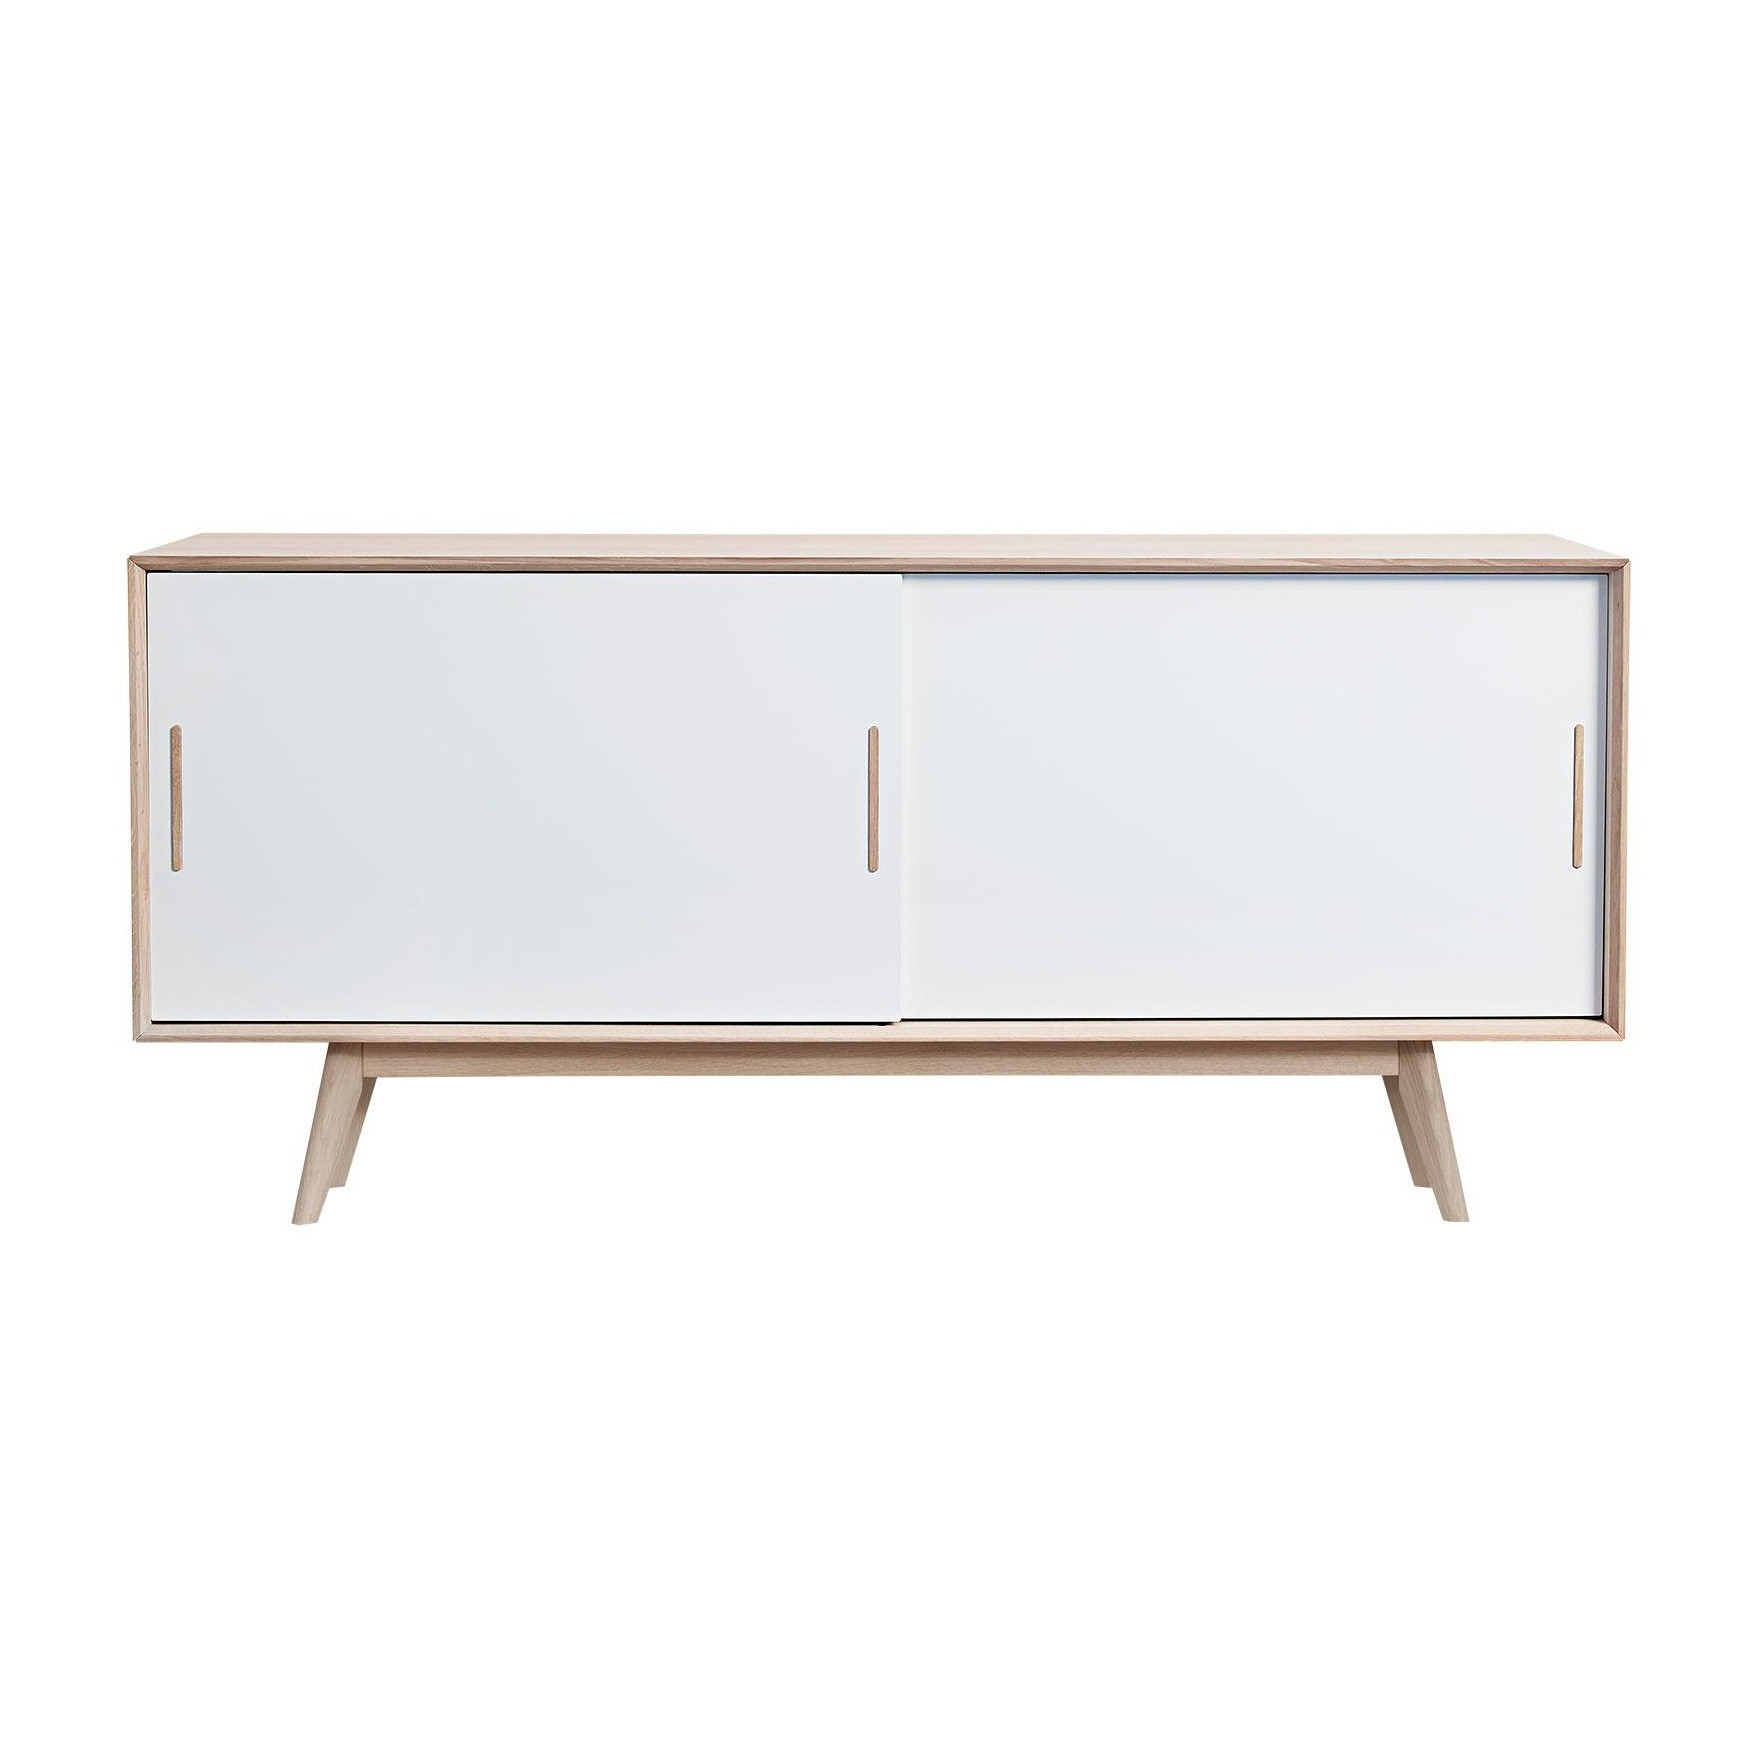 Sideboard Holz Andersen Furniture S4 Sideboard Sockel Holz